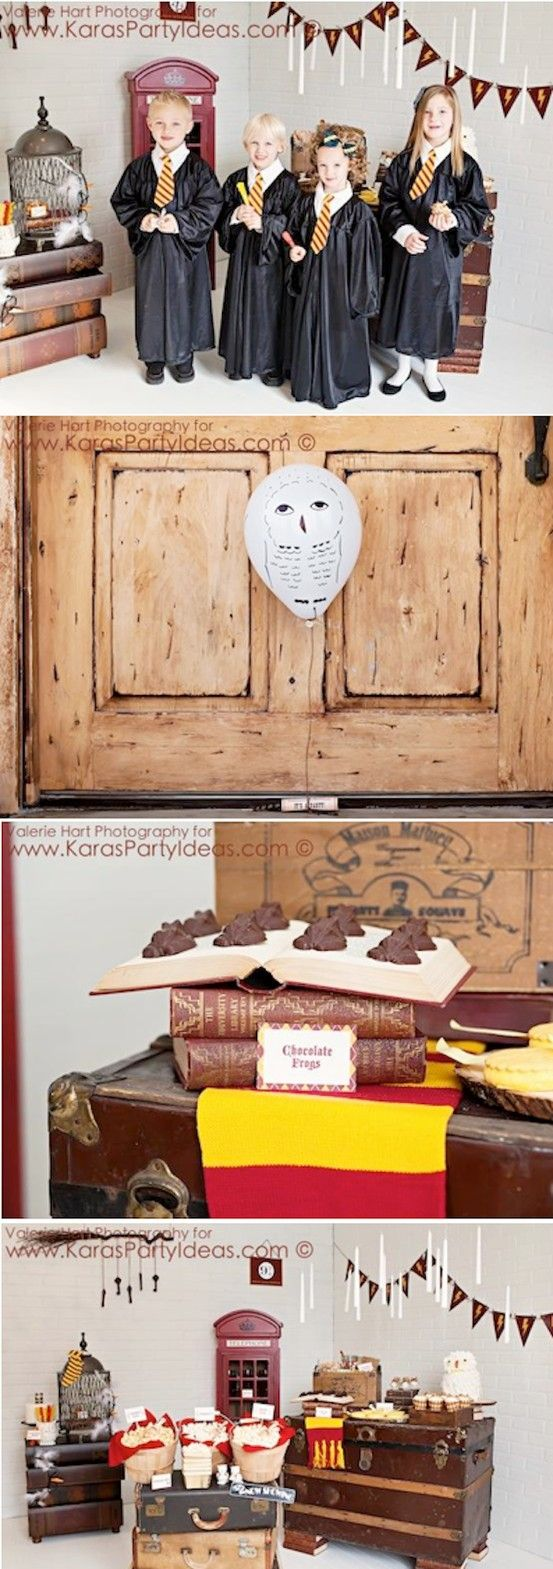 TONS of Harry Potter Birthday Party Ideas! Printables, decorations, tutorials, DIY tips favors, food ideas, cake ideas & more! Via Kara's Party Ideas | KarasPartyIdeas.com for Parenting Magazine